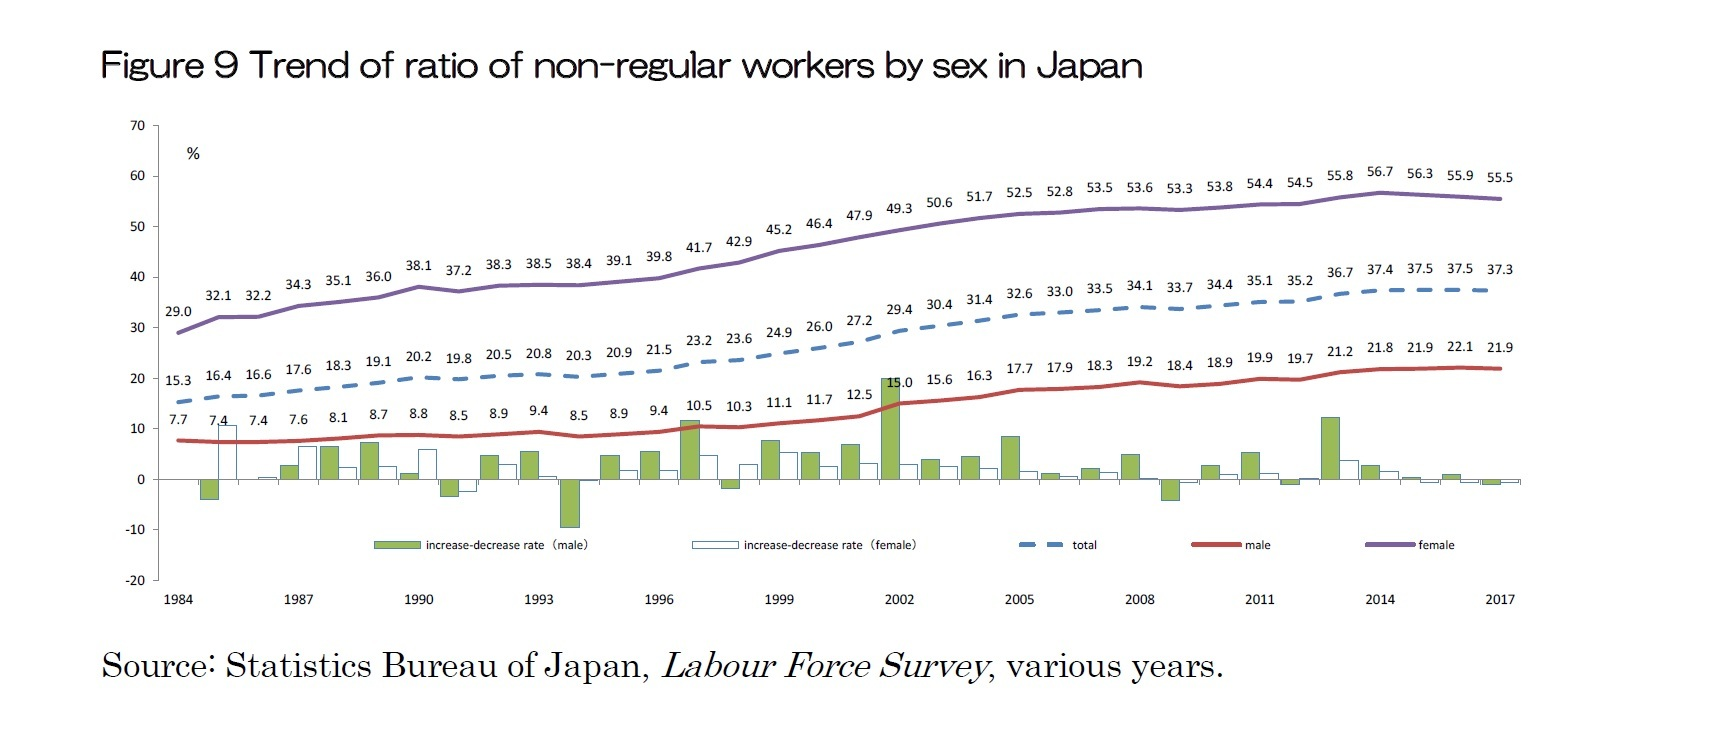 Figure 9 Trend of ratio of non-regular workers by sex in Japan